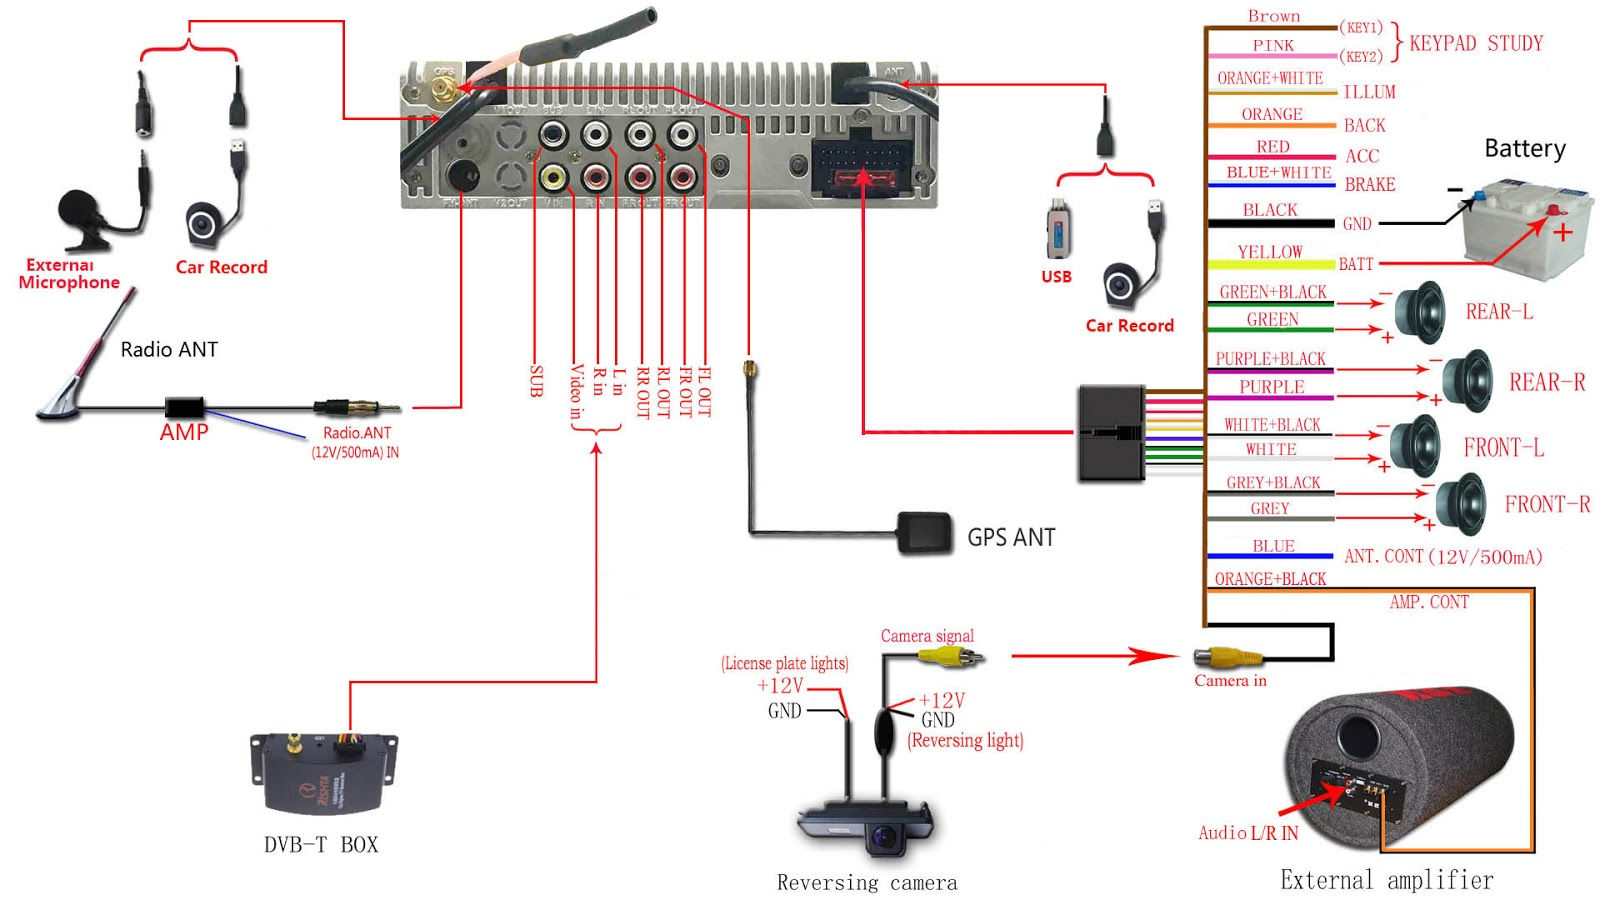 How To Connect Wiring Harness To Head Unit : Single din wiring harness diagram images